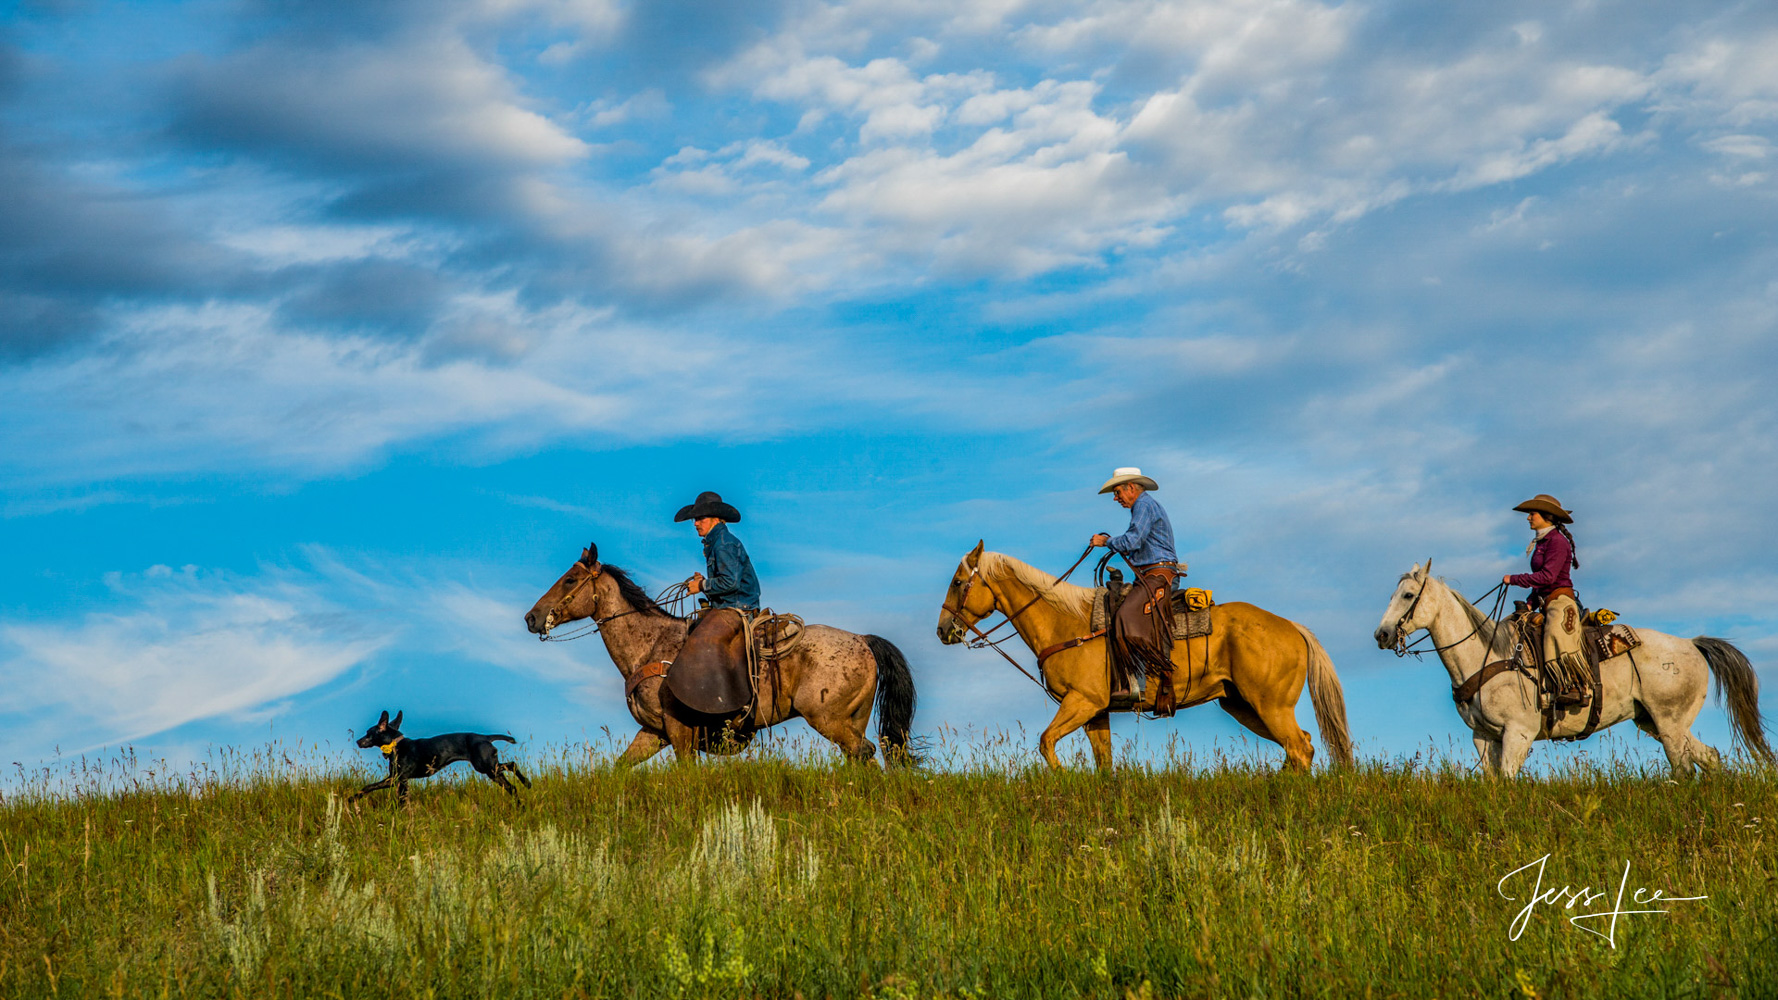 cowboy, western, Large format, cowgirl, ranch, museum, fine art, print, jess lee, artist, photographer, limited edition, high quality, high resolution, beautiful, artistic,, photo